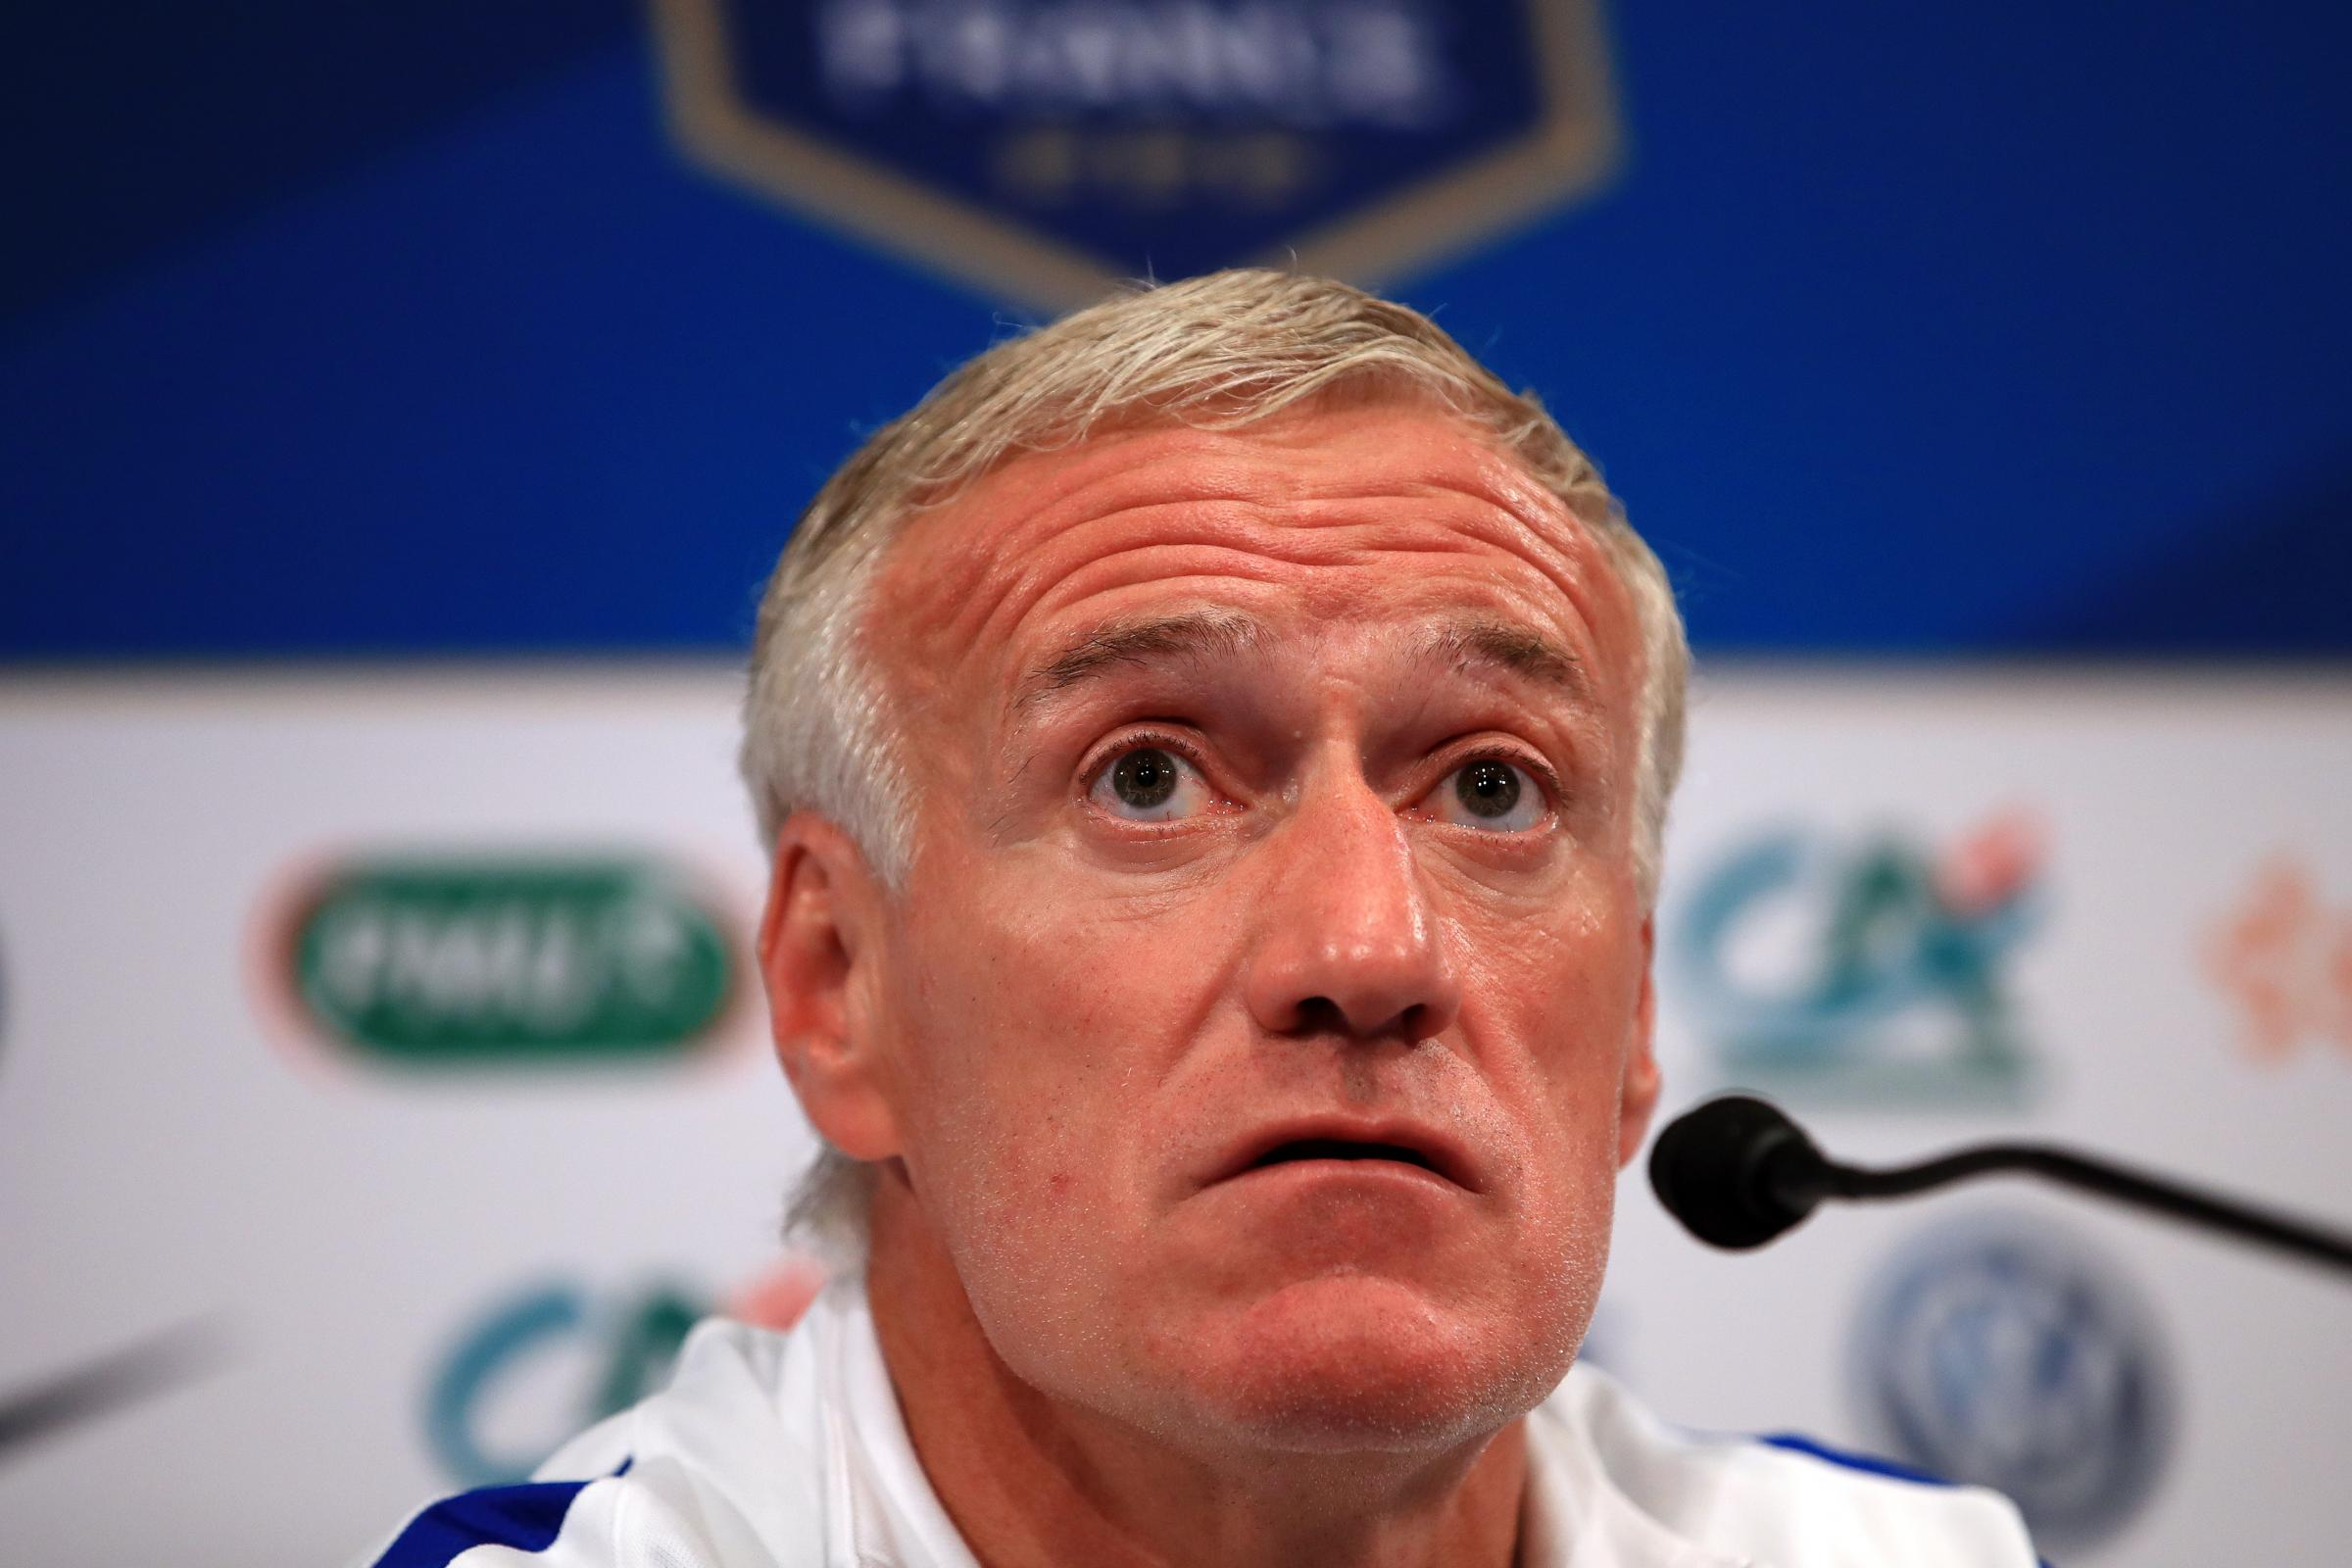 France manager Didier Deschamps was relieved his side managed to get their job done against Moldova